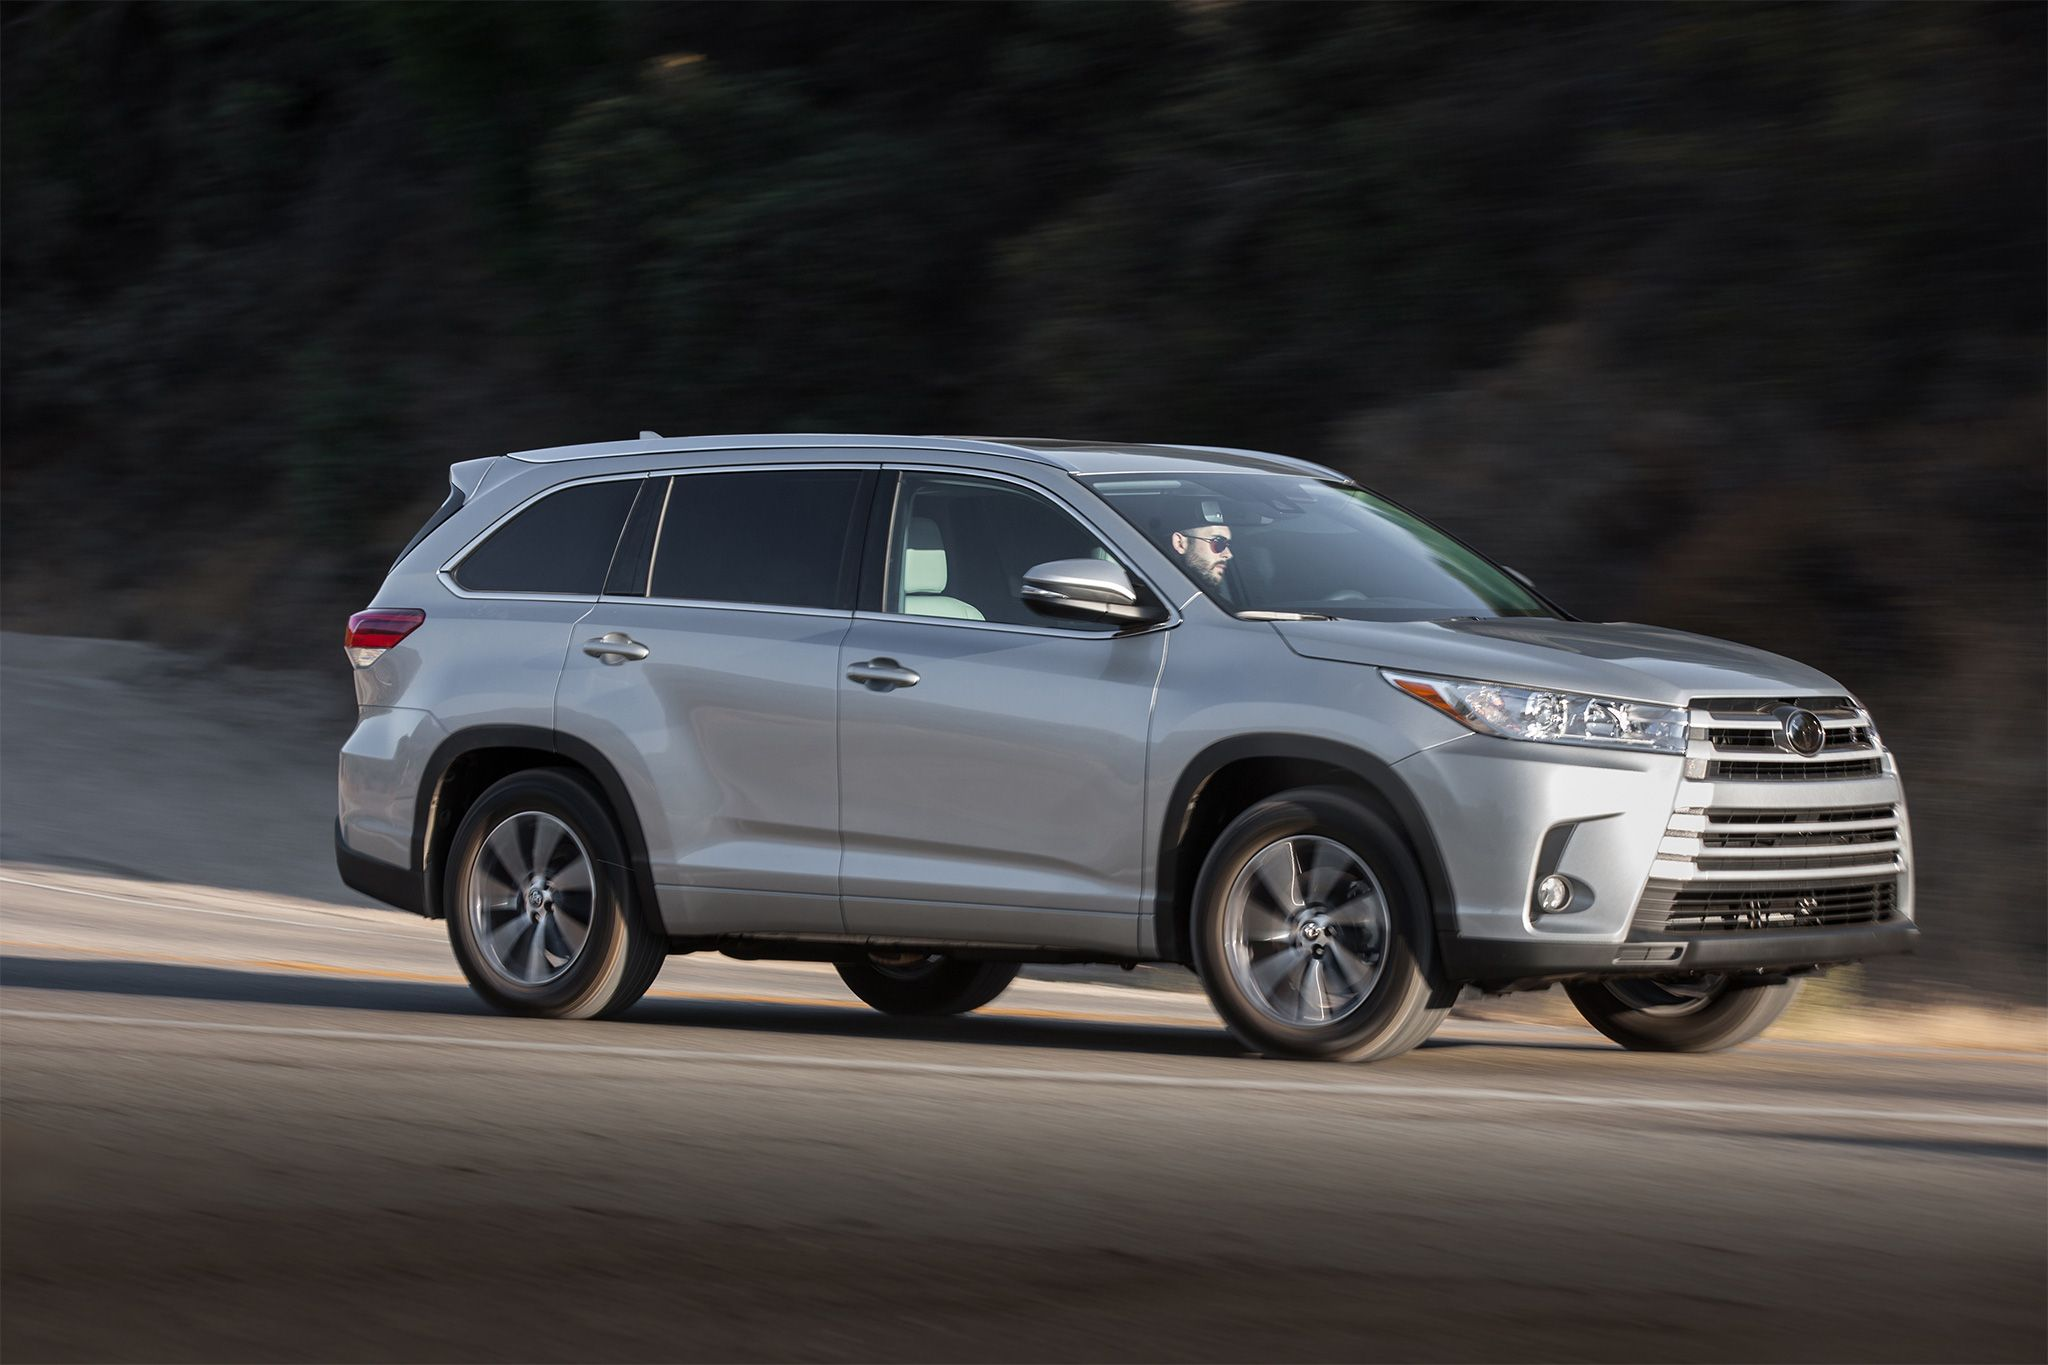 Motor Trend Reviews The 2017 Toyota Highlander Where Consumers Can Find  Detailed Information On Specs, Fuel Economy, Transmission And Safety.